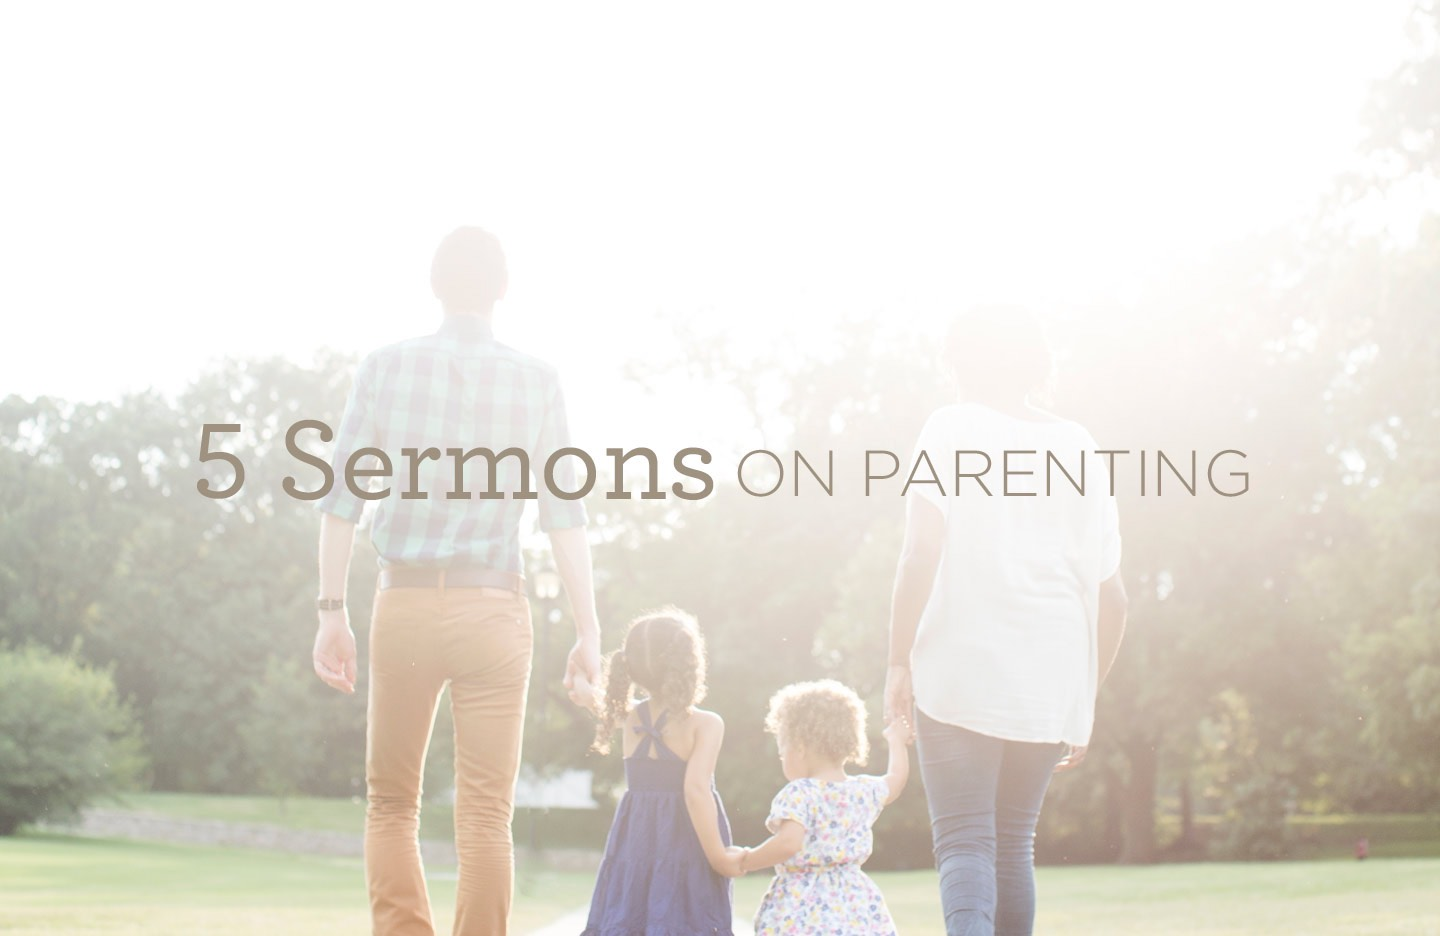 thumbnail image for 5 Sermons on Parenting